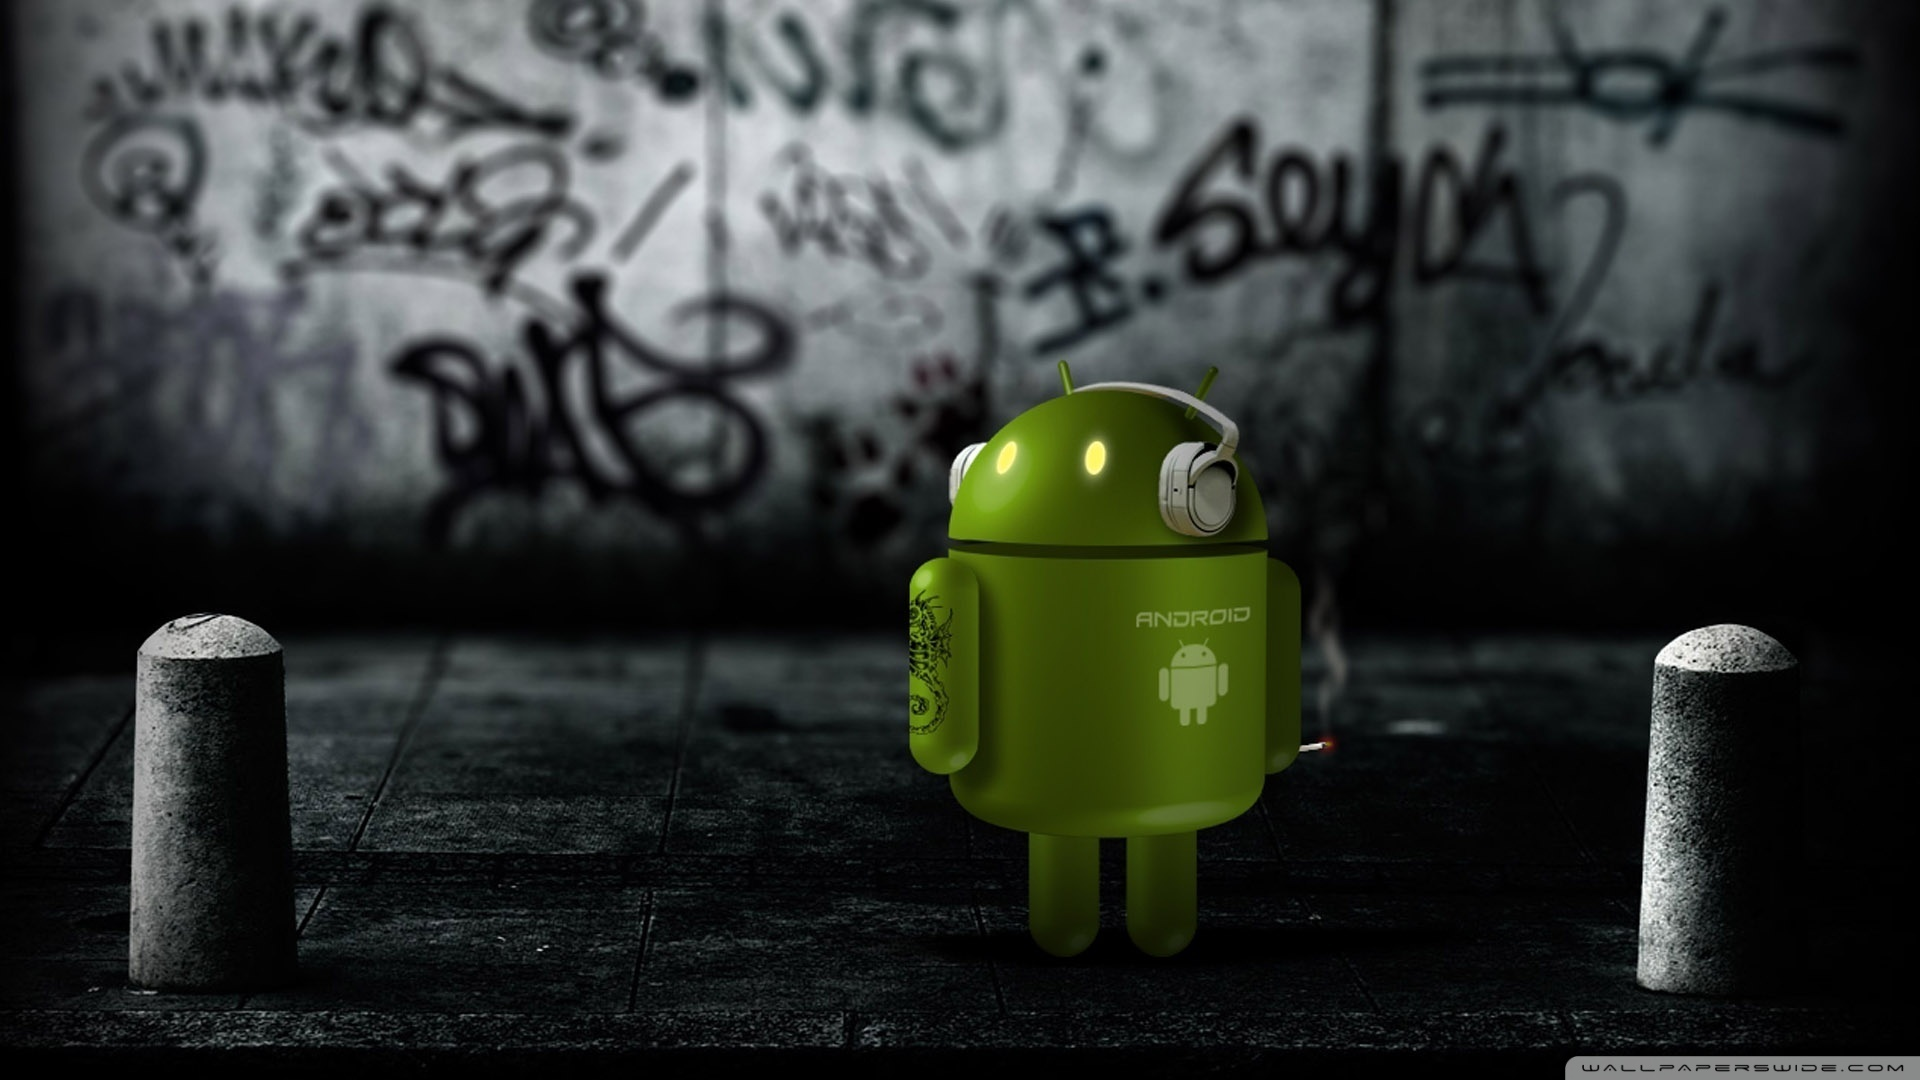 Android Robot Listening To Music Wallpaper 1920x1080 Android Robot 1920x1080